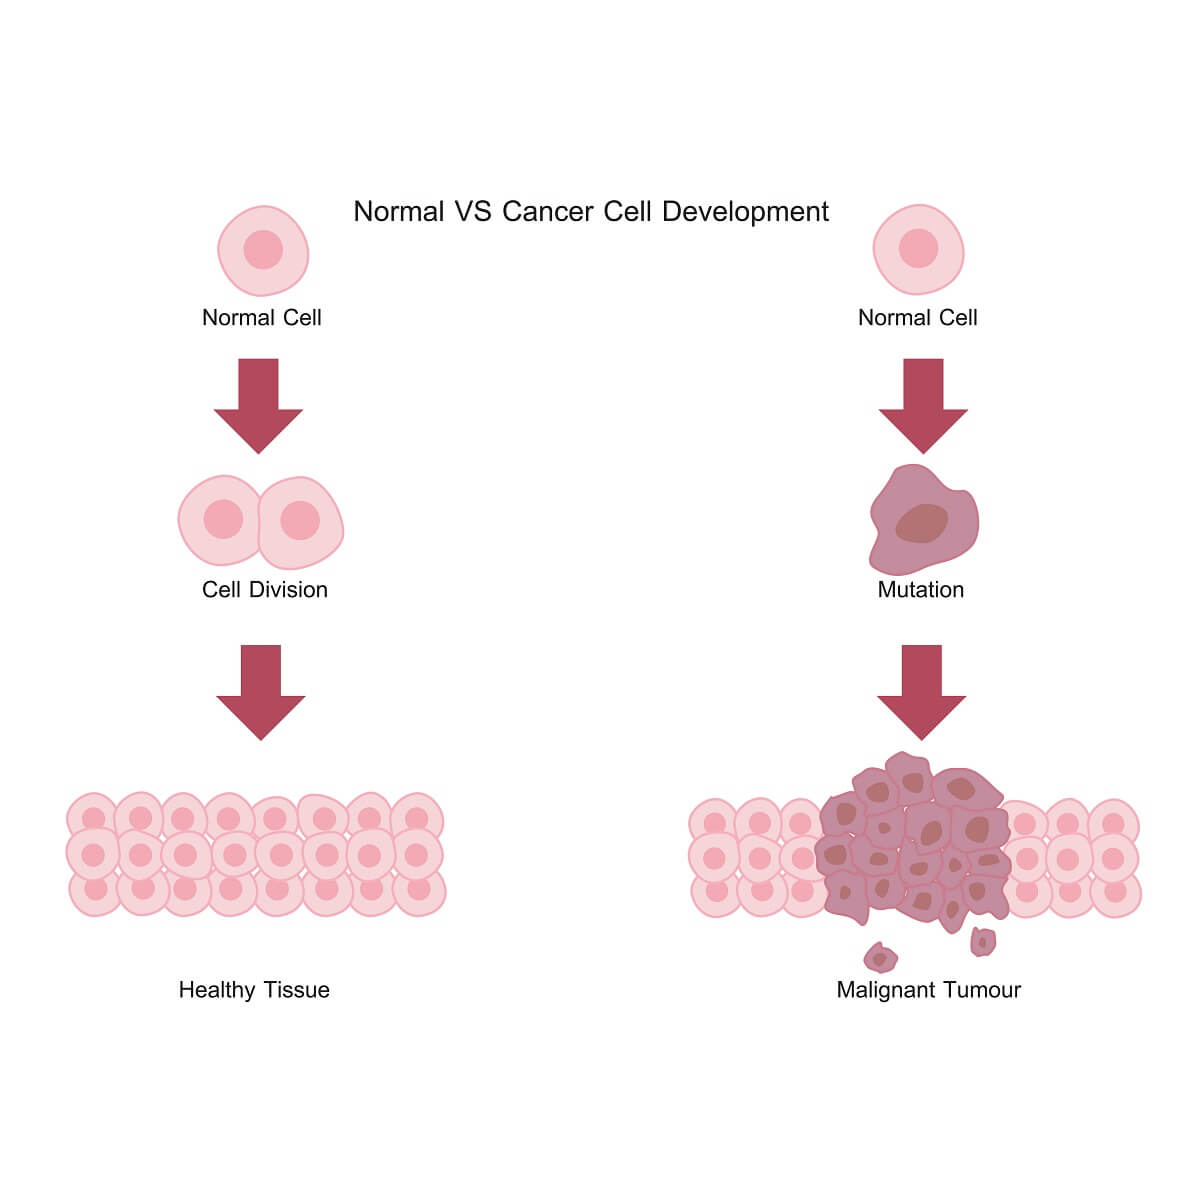 Cells with mutations in pathways controlling cyclins, CDKs, or other aspects of the cell cycle can often become cancerous